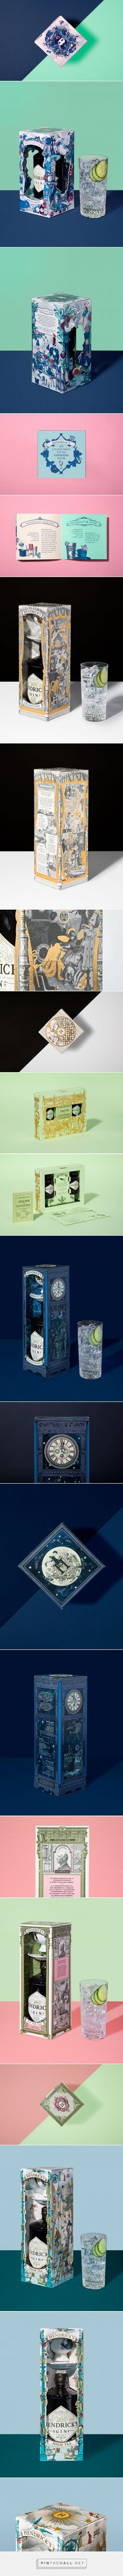 Hendrick's Gin Gift Box design by Here Design - https://www.packagingoftheworld.com/2018/02/hendricks-gin-gift-box.html